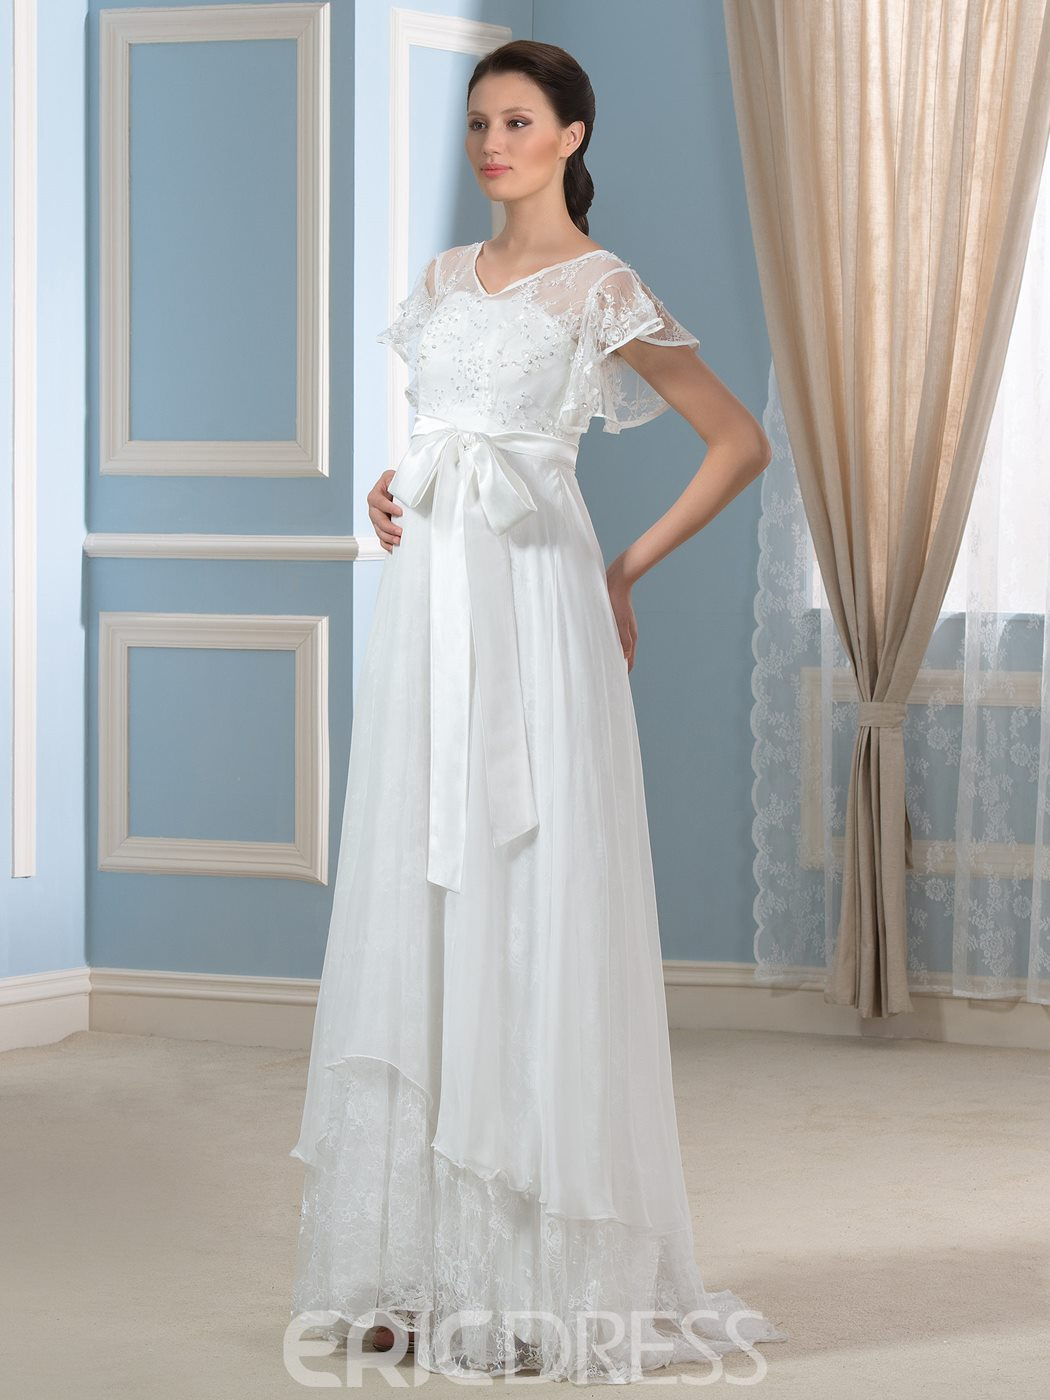 Ericdress Charming V Neck Short Sleeves Lace Maternity Wedding Dress